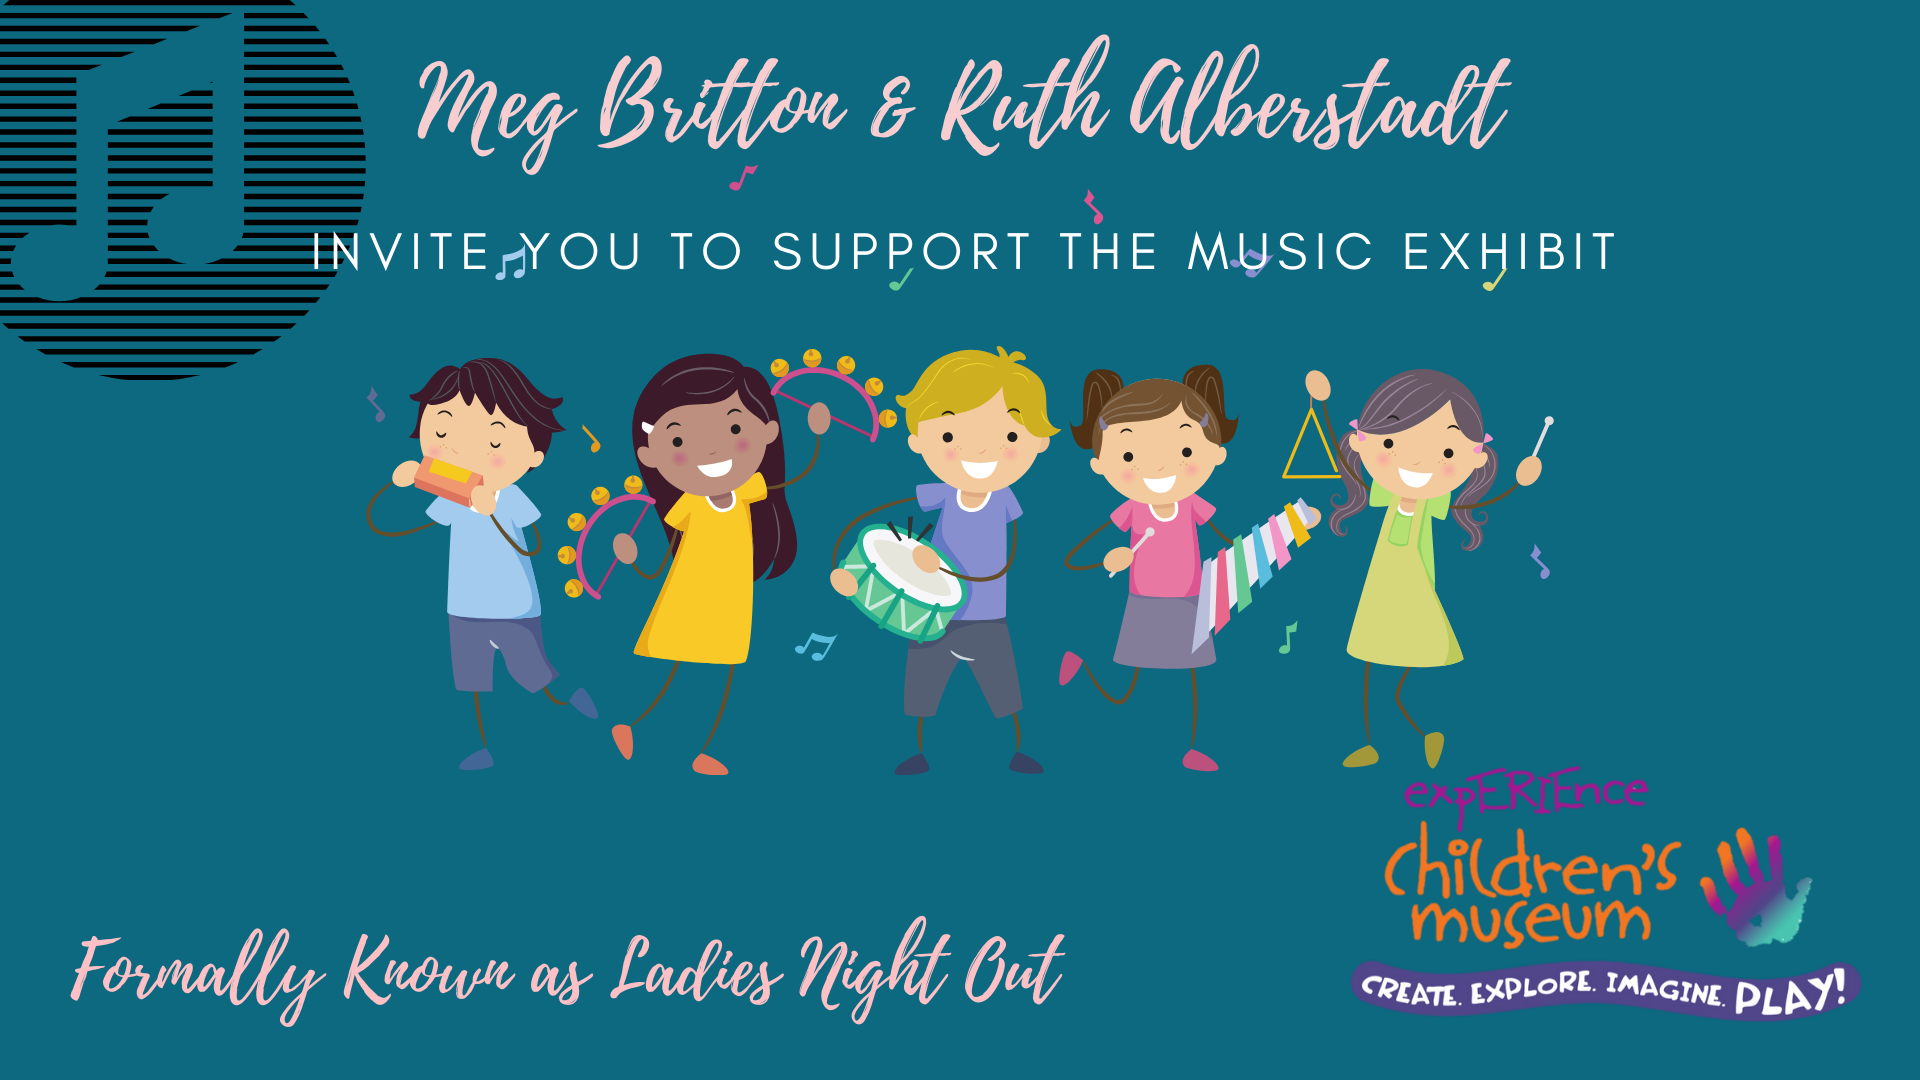 Music Exhibit Virtual Event- Formally Ladies Night Out